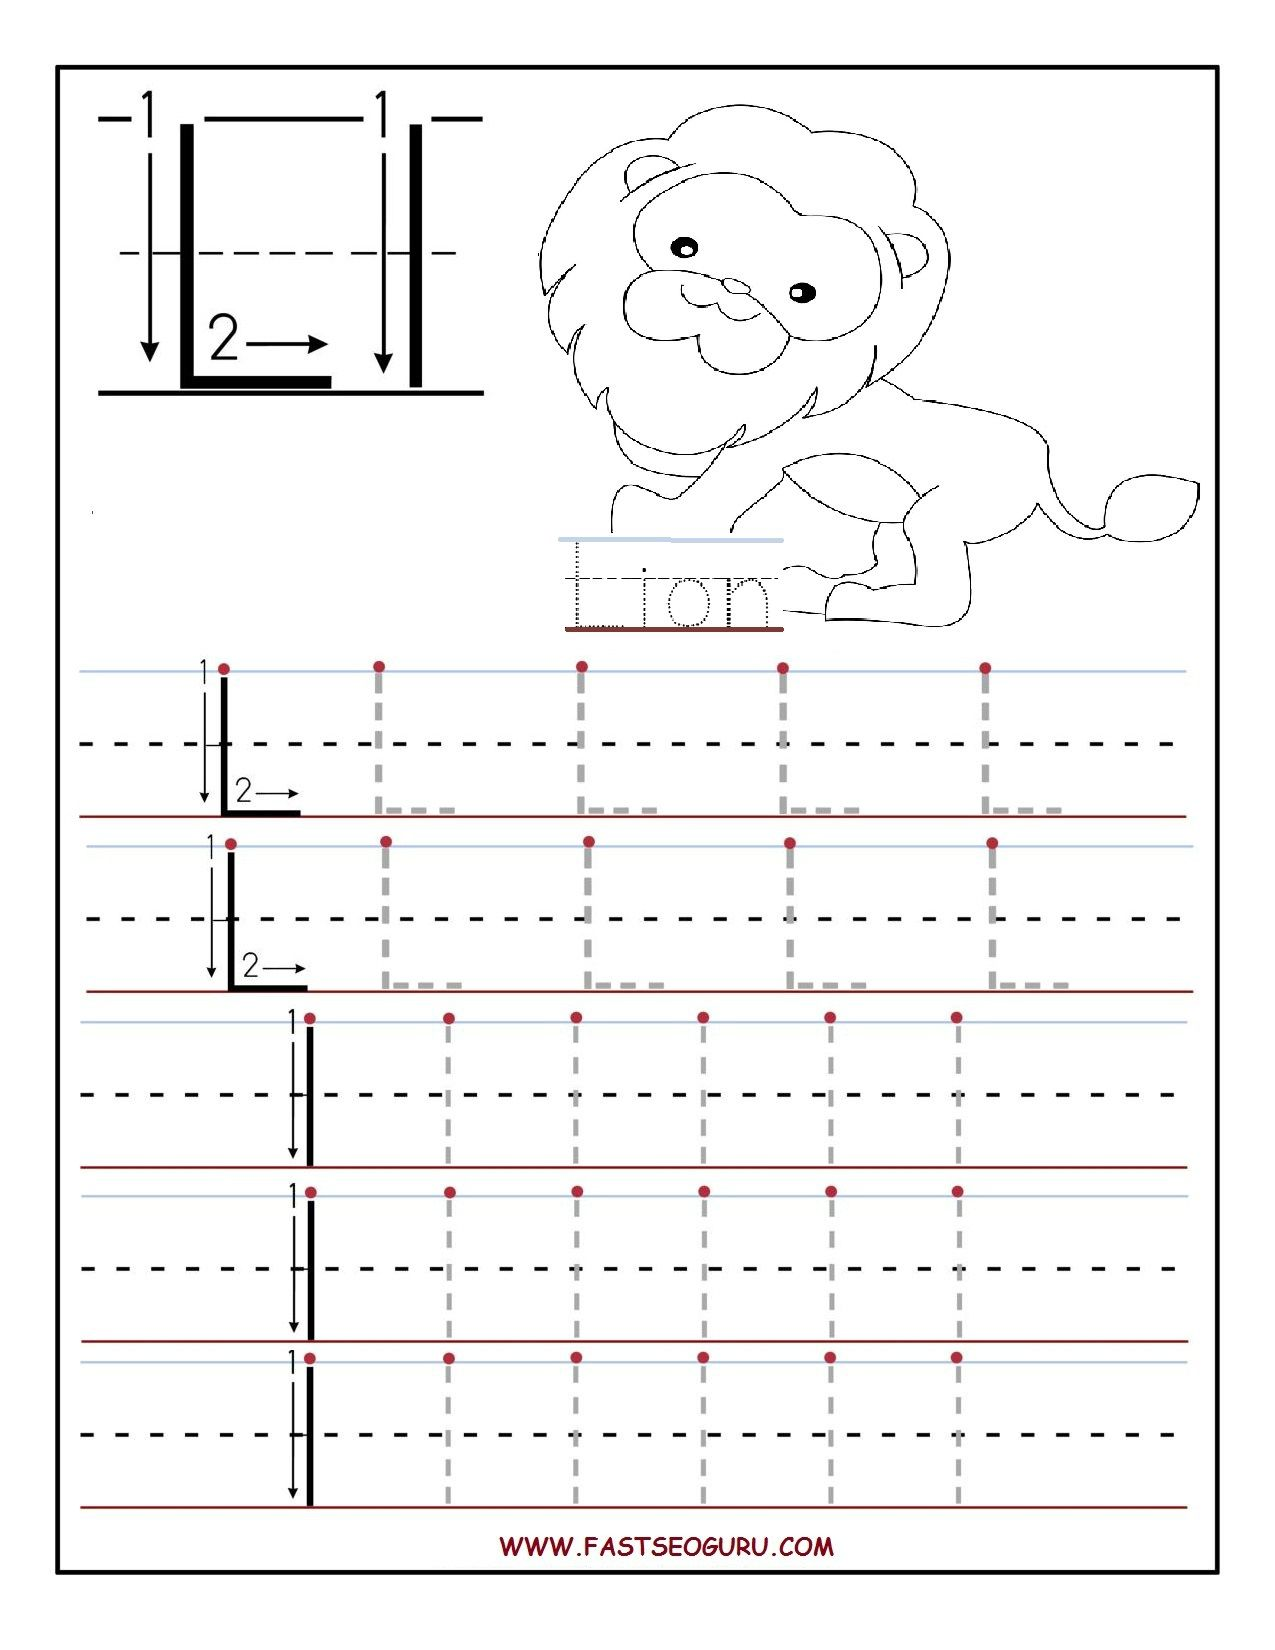 printable letter l tracing worksheets for preschool education tracing worksheets tracing. Black Bedroom Furniture Sets. Home Design Ideas